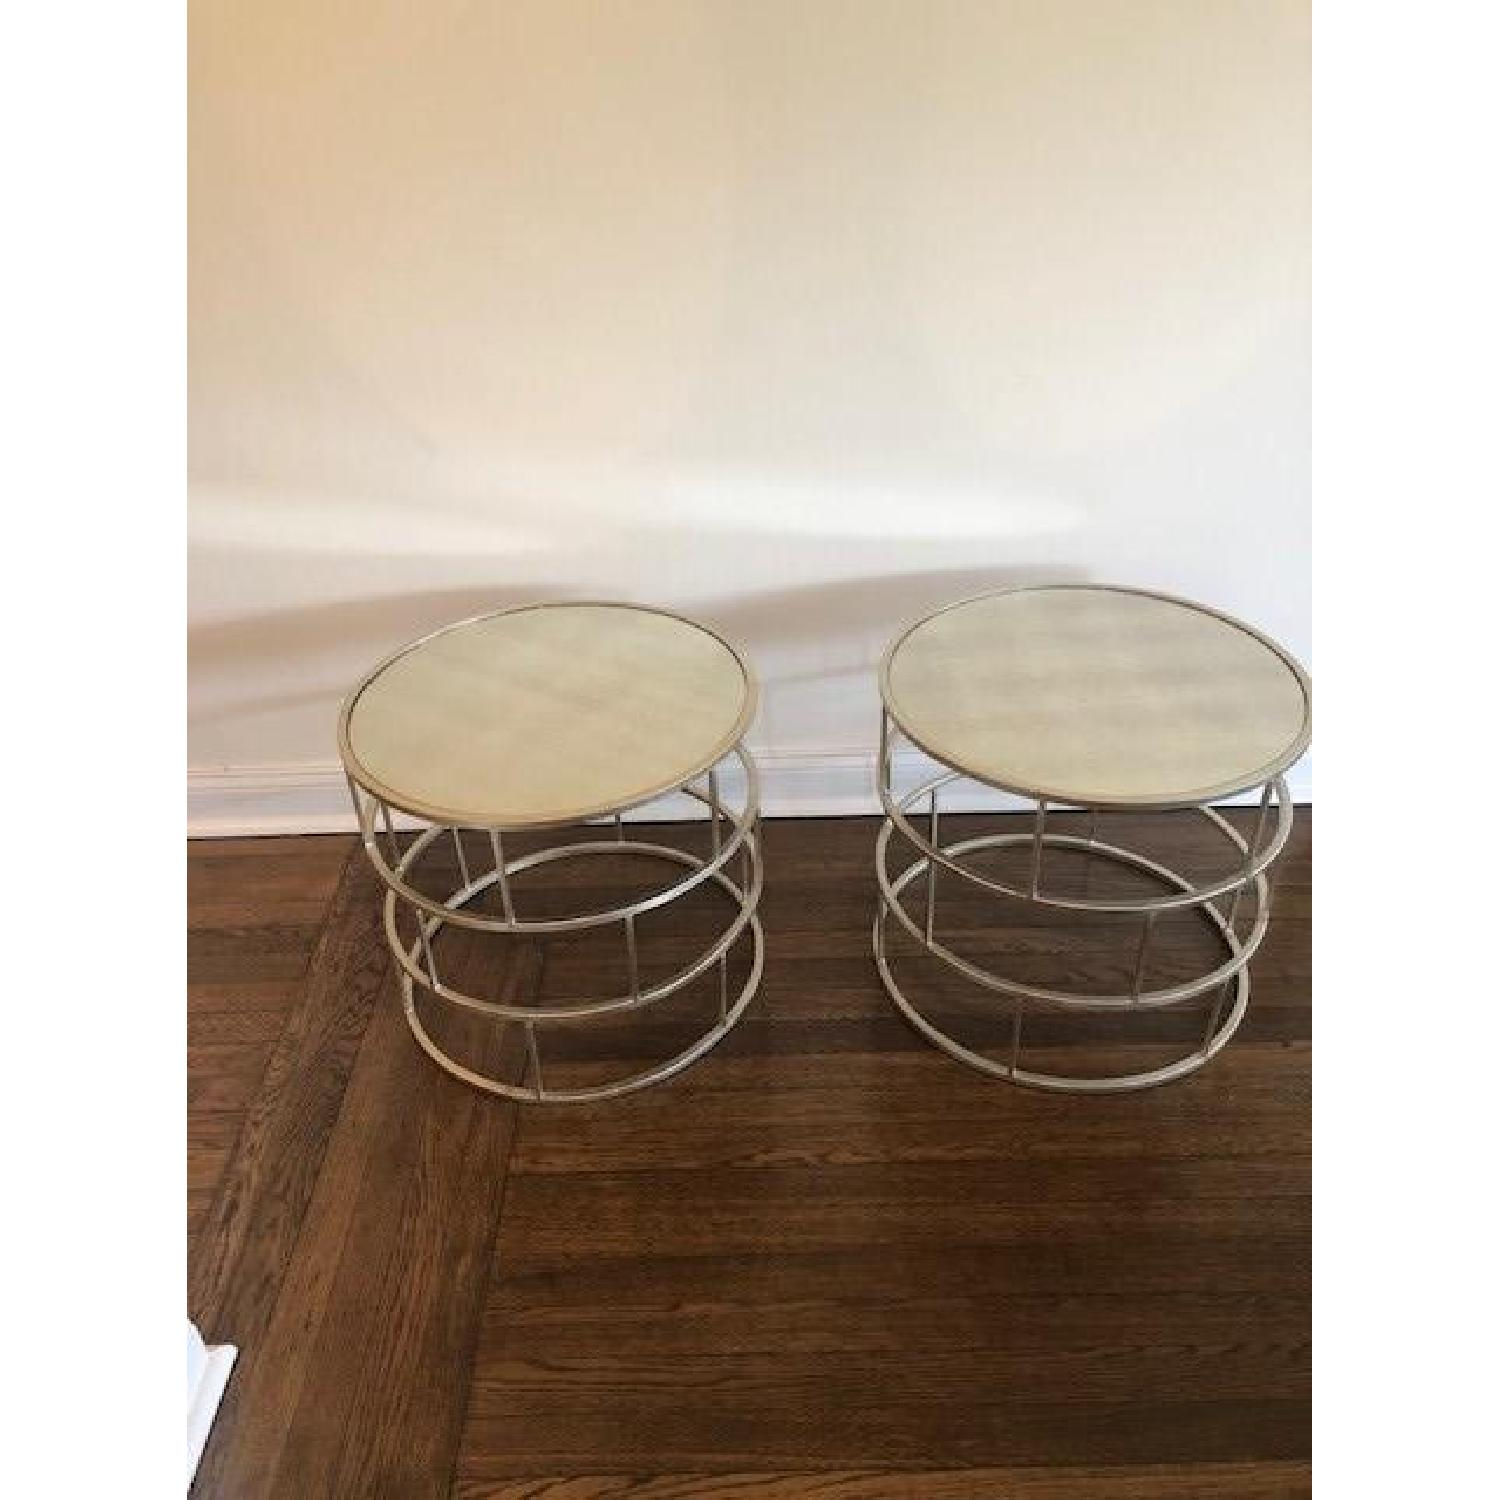 Modern Round Mirrored End Tables-0